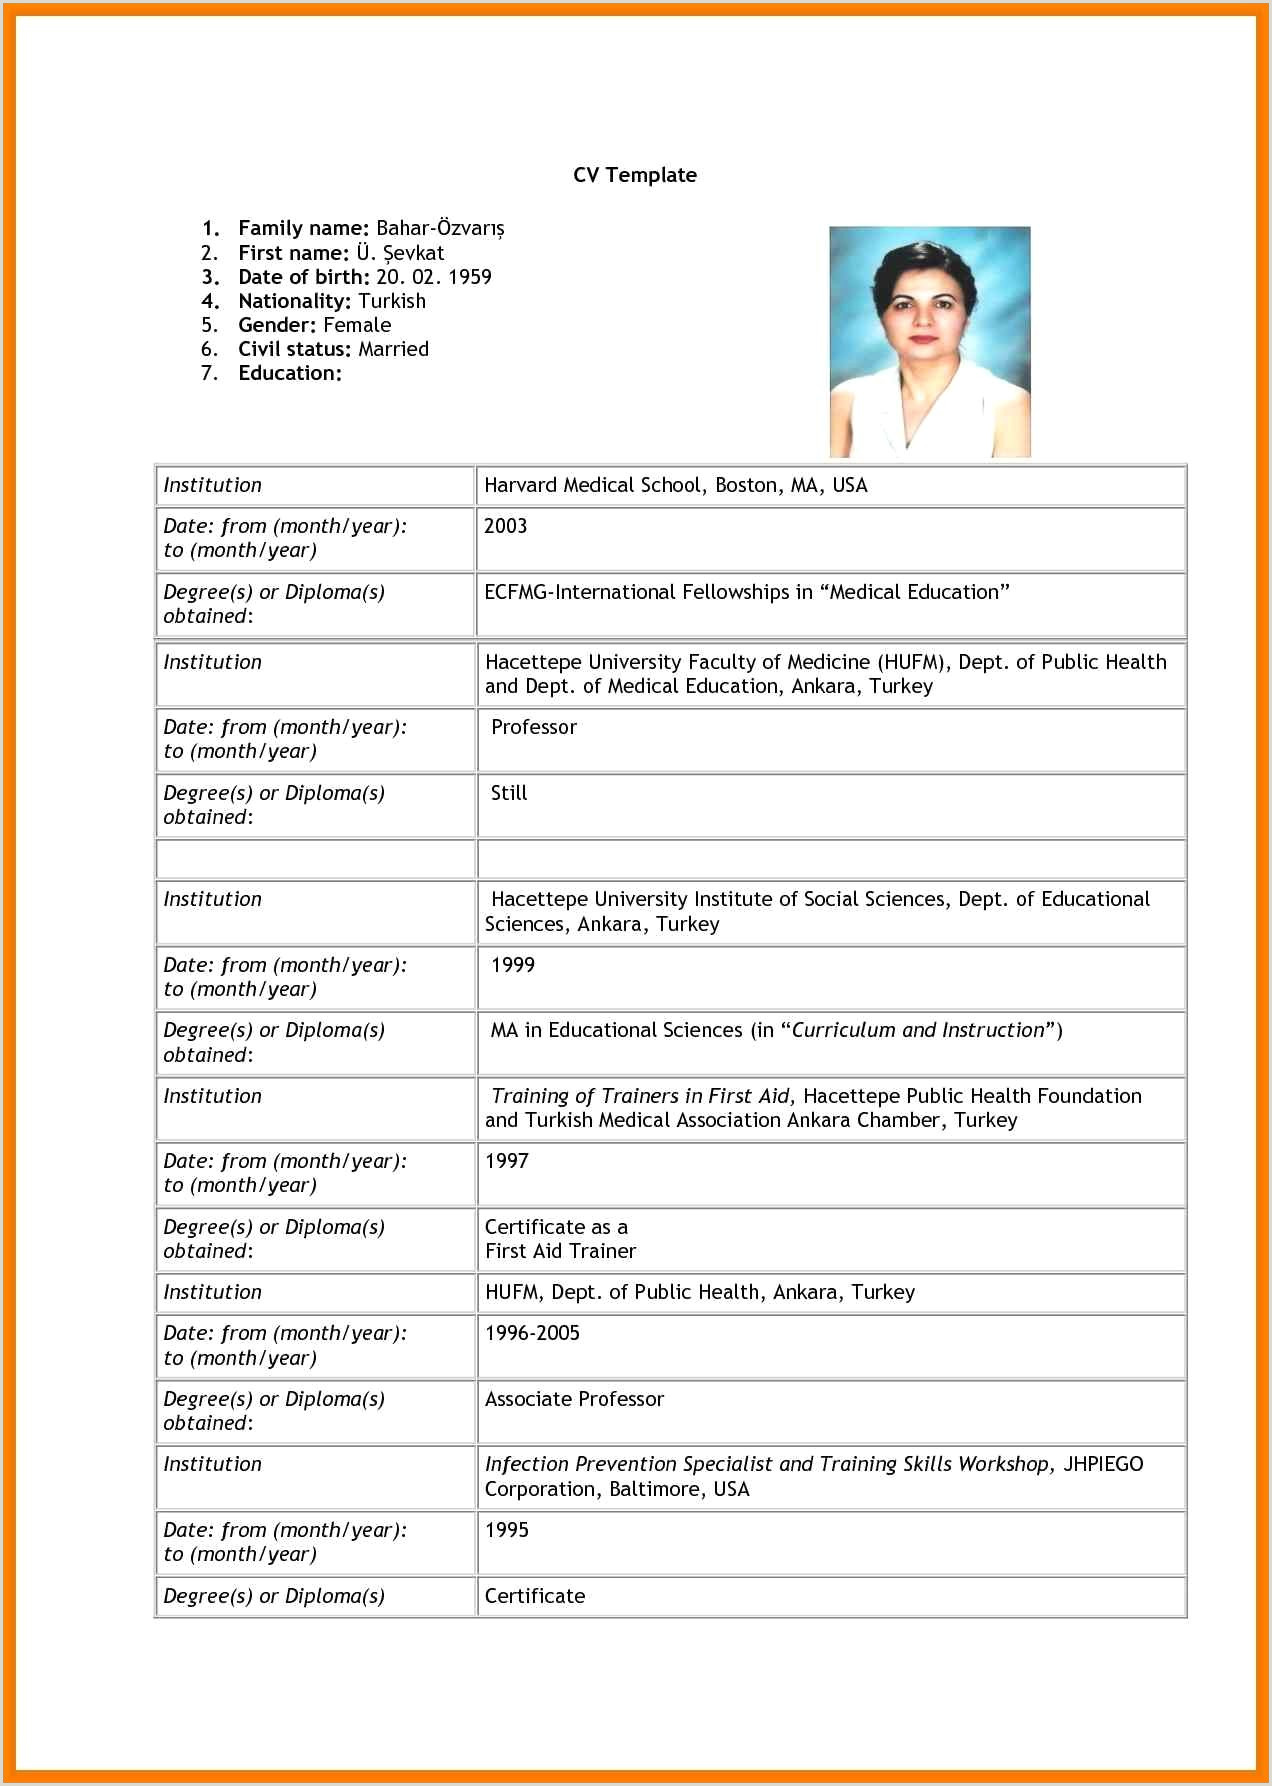 Latest Cv format for Job Application In Sri Lanka Curriculum Vitae for Job Application Examples Filename